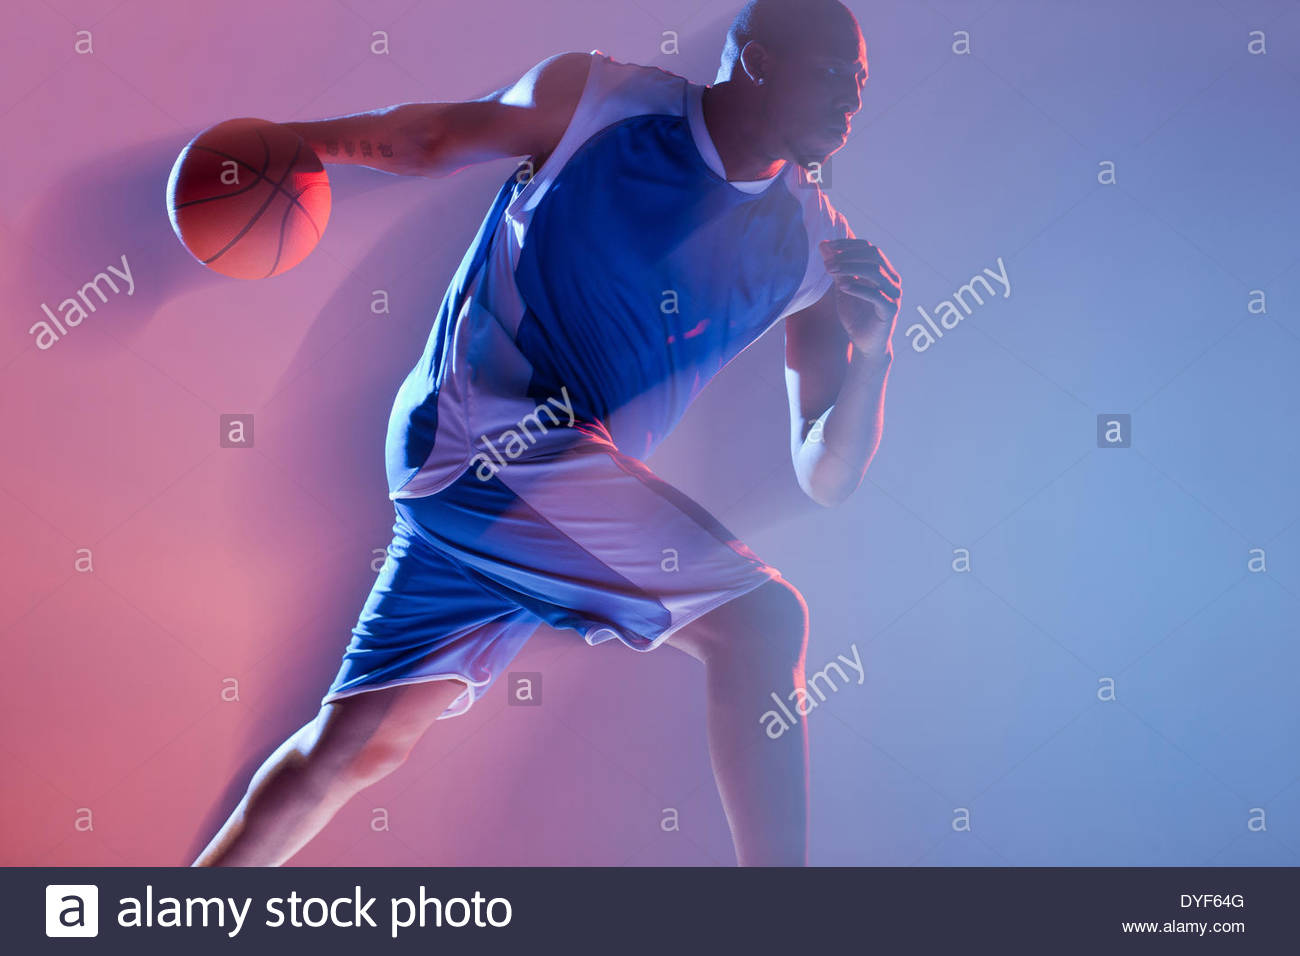 Joueur de basket-ball de dribbler Photo Stock